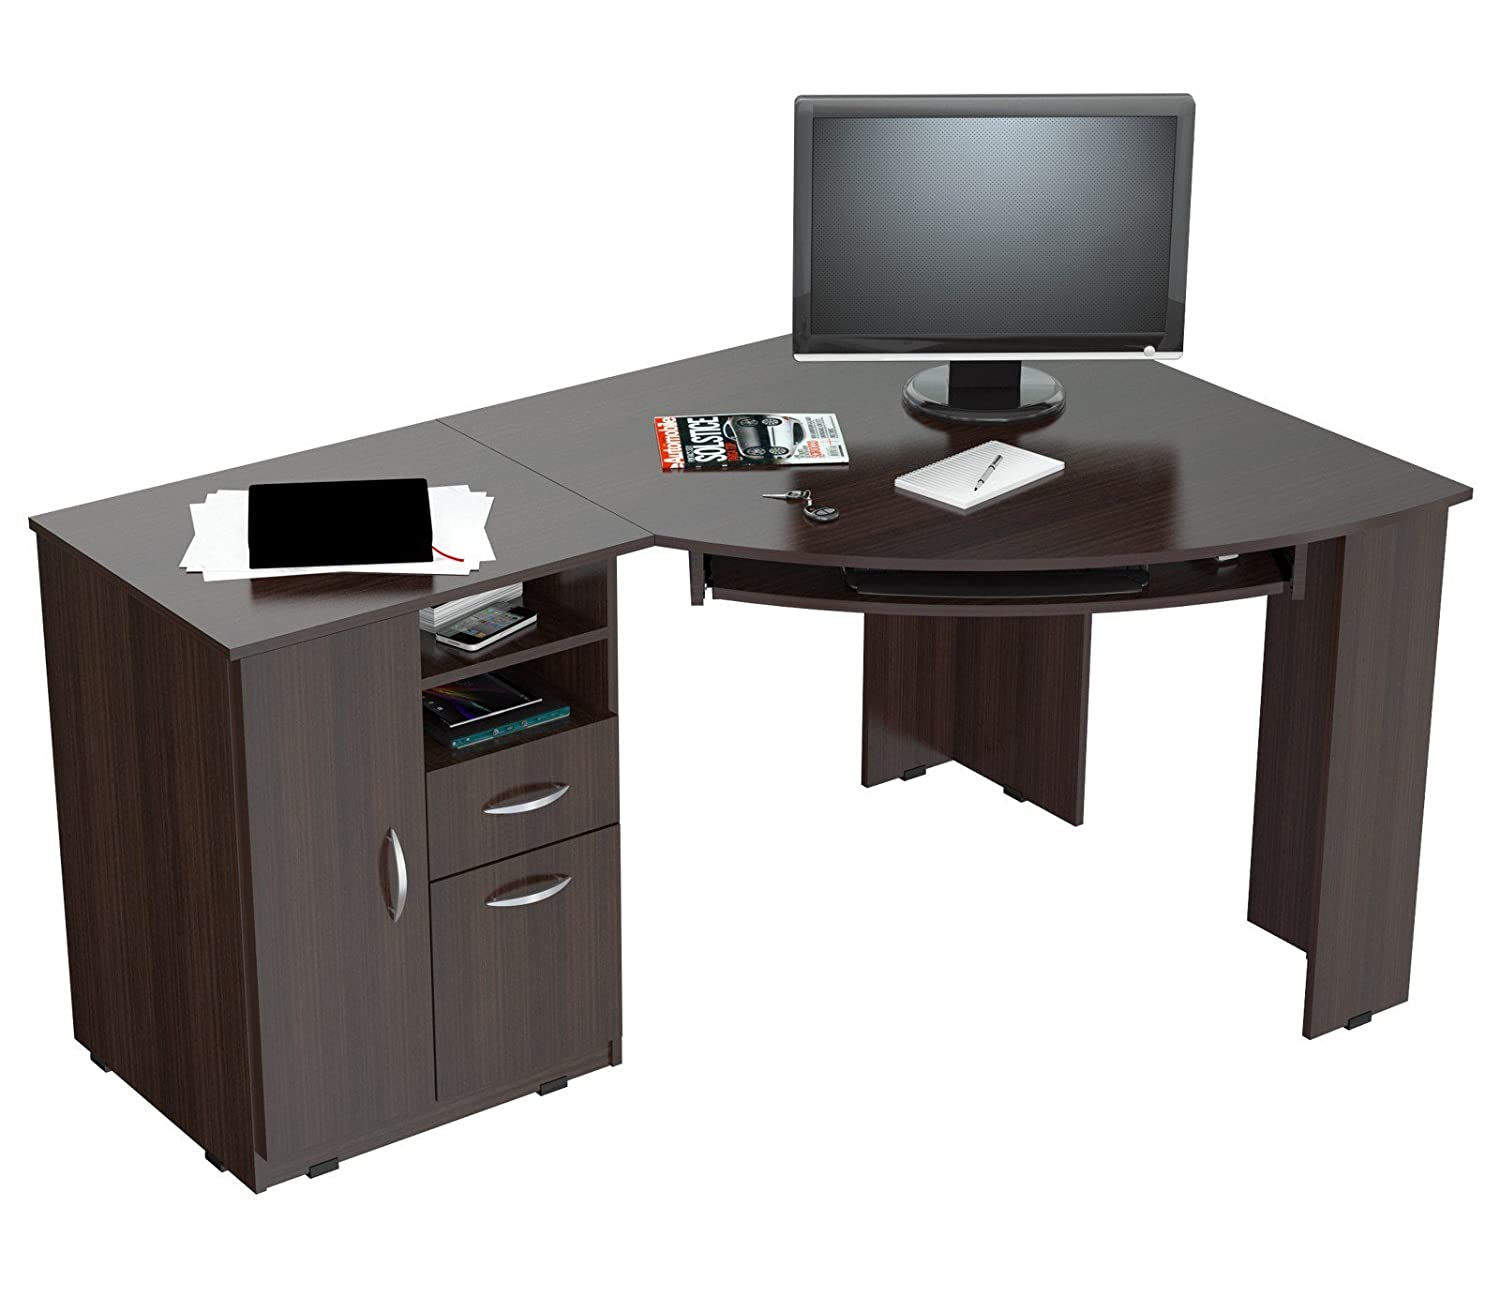 Super Home Office Furniture Online Shopping For Clothing Shoes Creativecarmelina Interior Chair Design Creativecarmelinacom